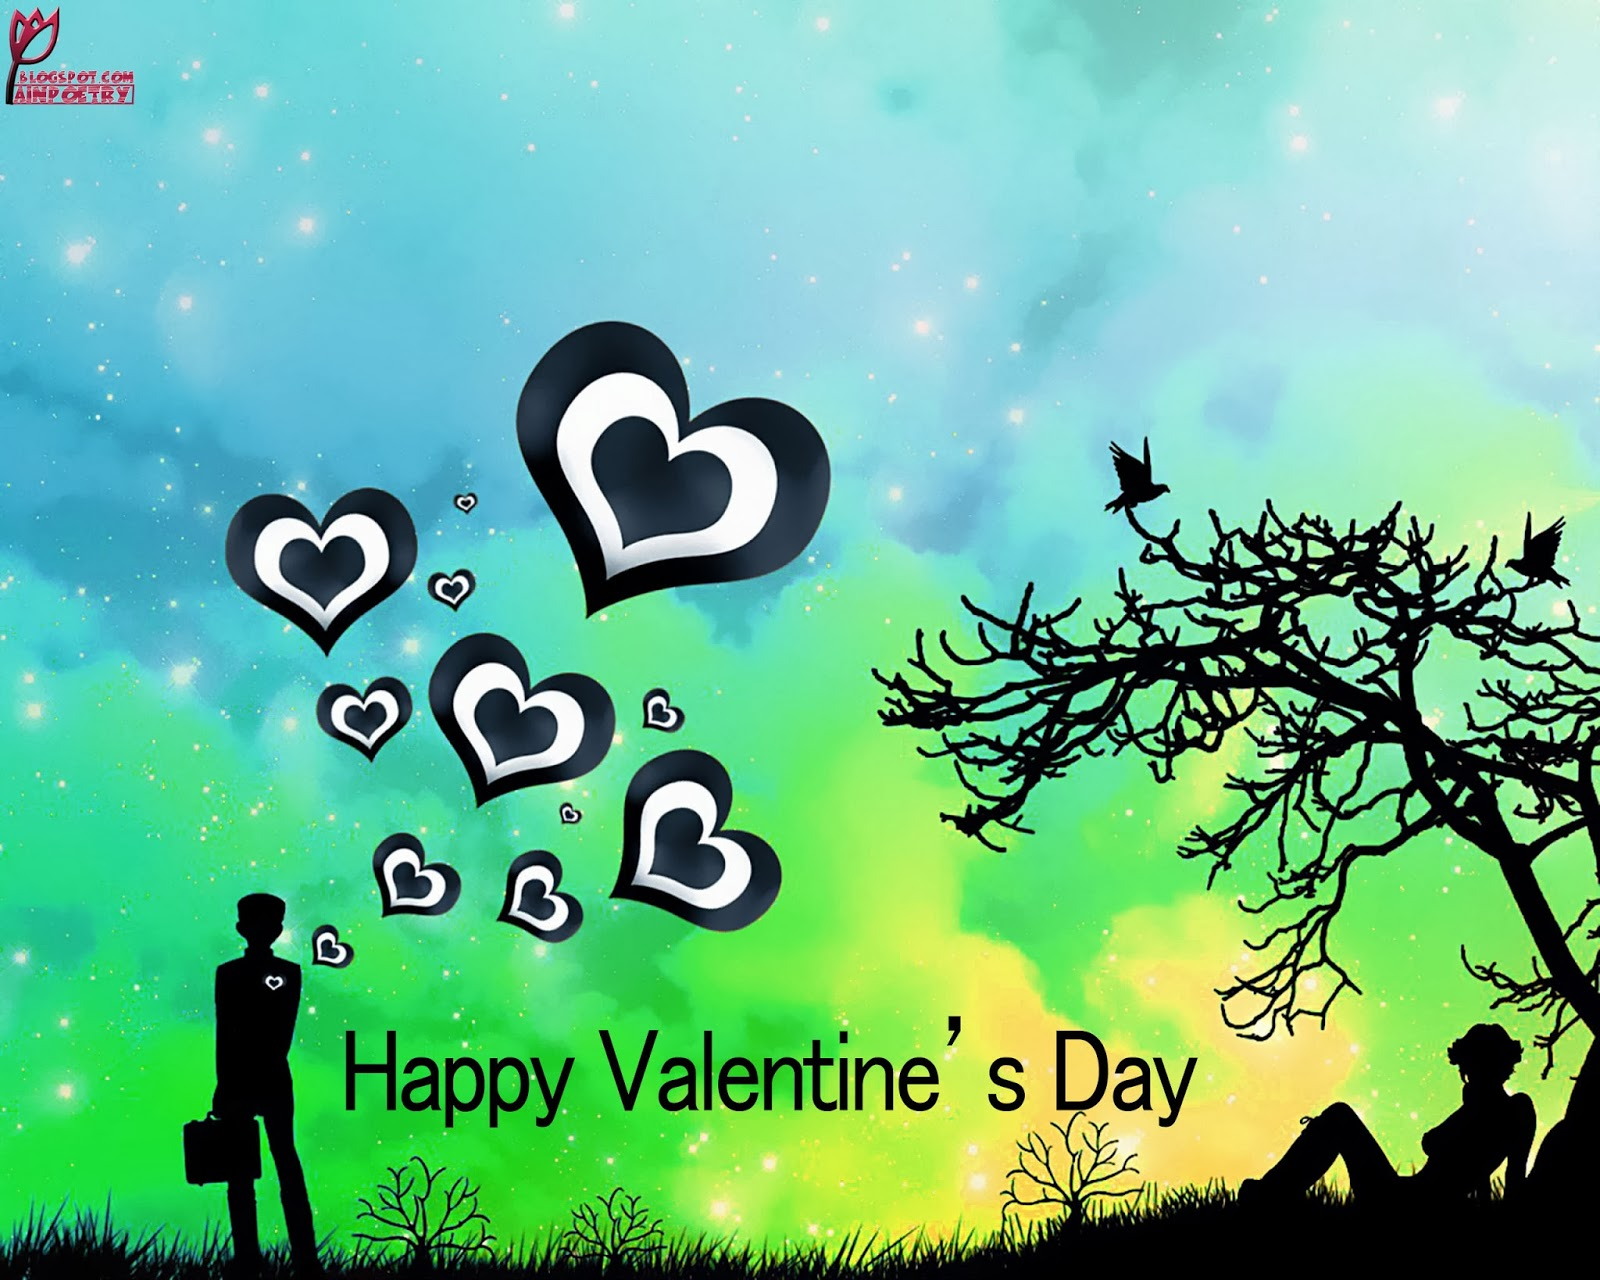 Happy-Valentines-Day-Wishes-Wallpaper-Reality-On-Heart-Image-HD-Wide